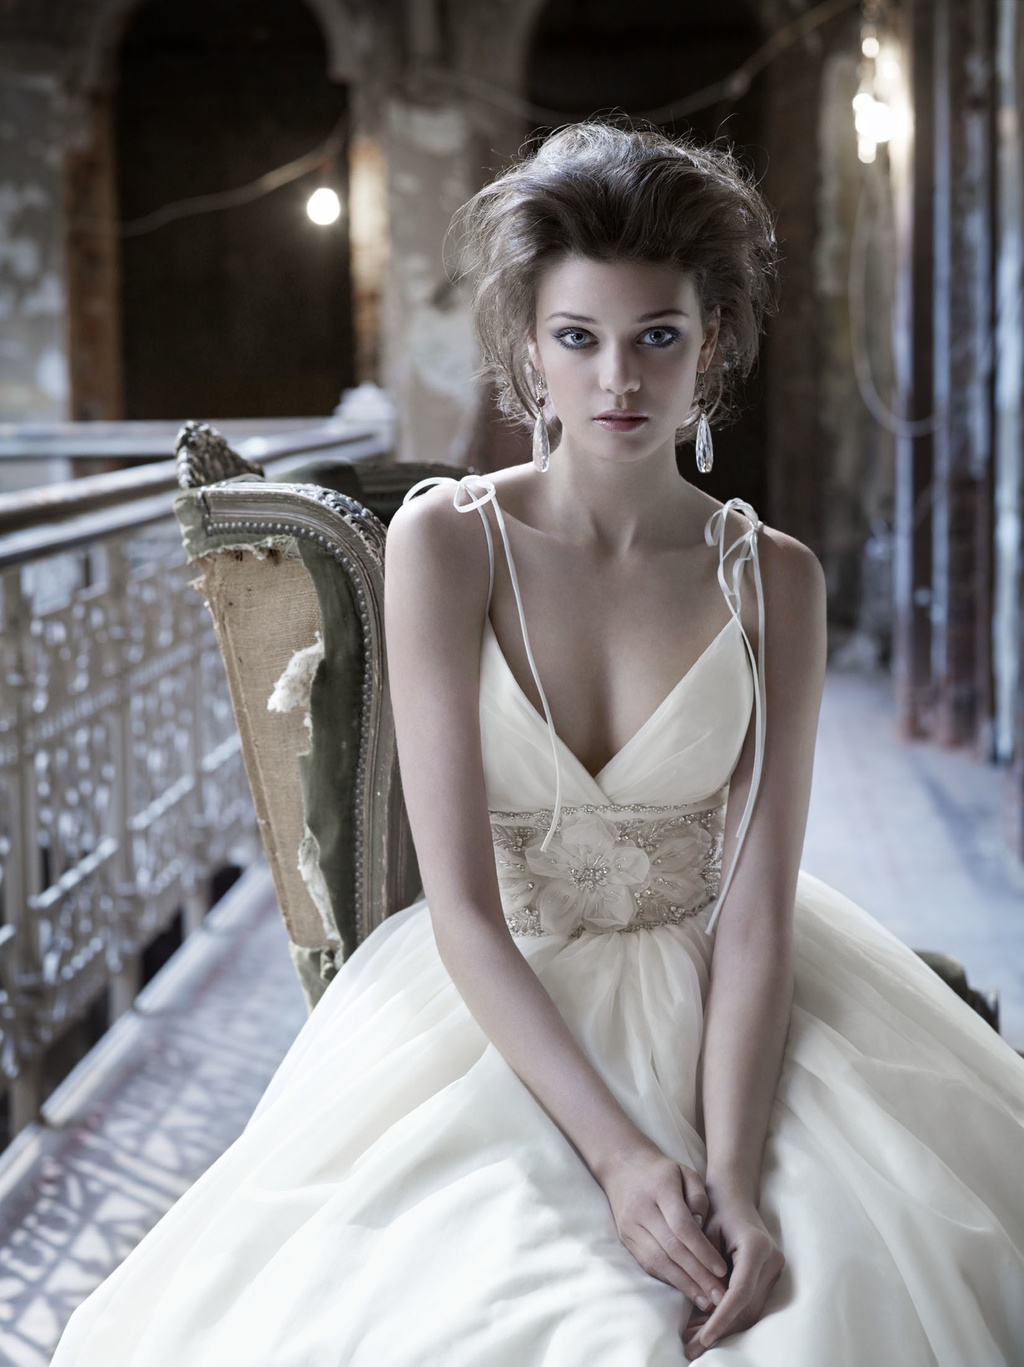 f62b7c71a331 'Fall 2011 Wedding Dresses: Old World Glamour, Vintage Details' Ideabook by  onewed on OneWed